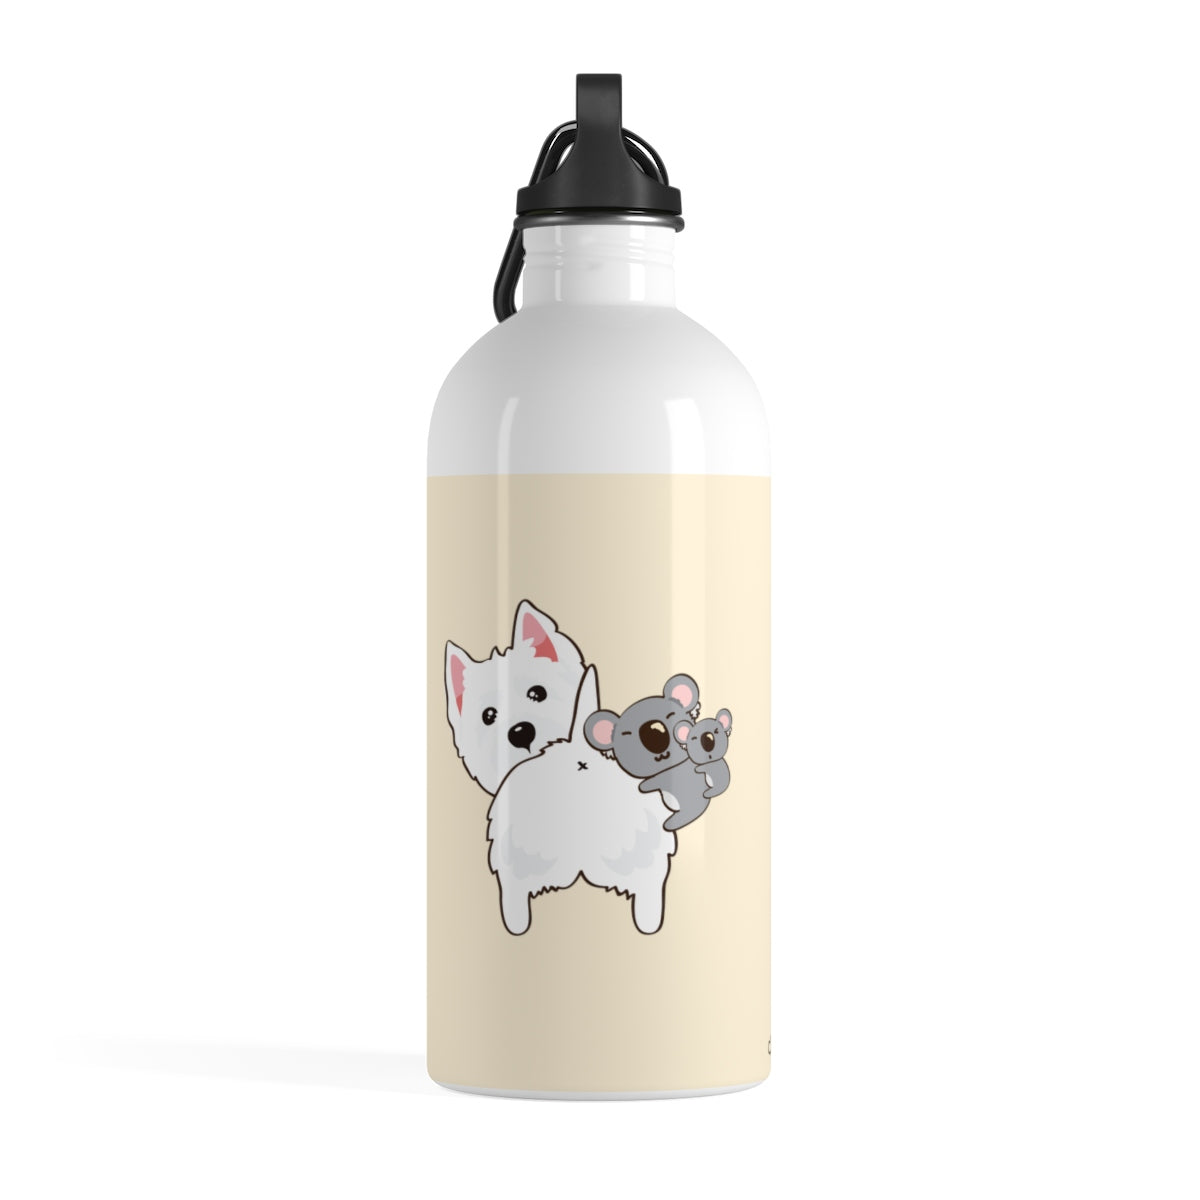 Stainless Steel Water Bottle - NOTHING BUTT LOVE